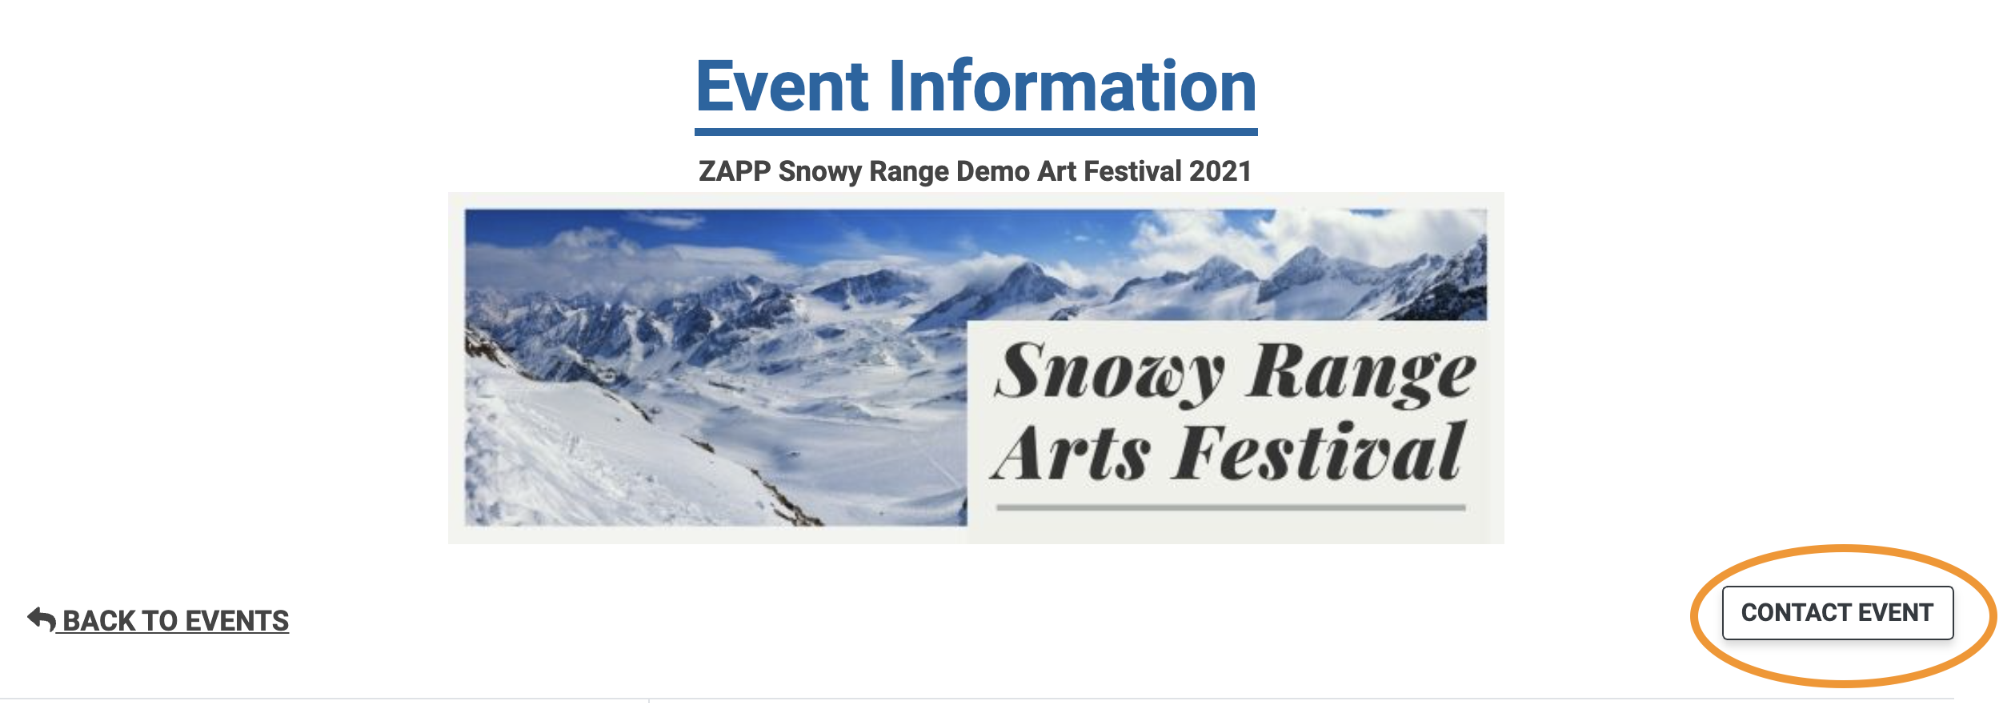 Image of the top of the Event Information page. The Contact Event button is circled.